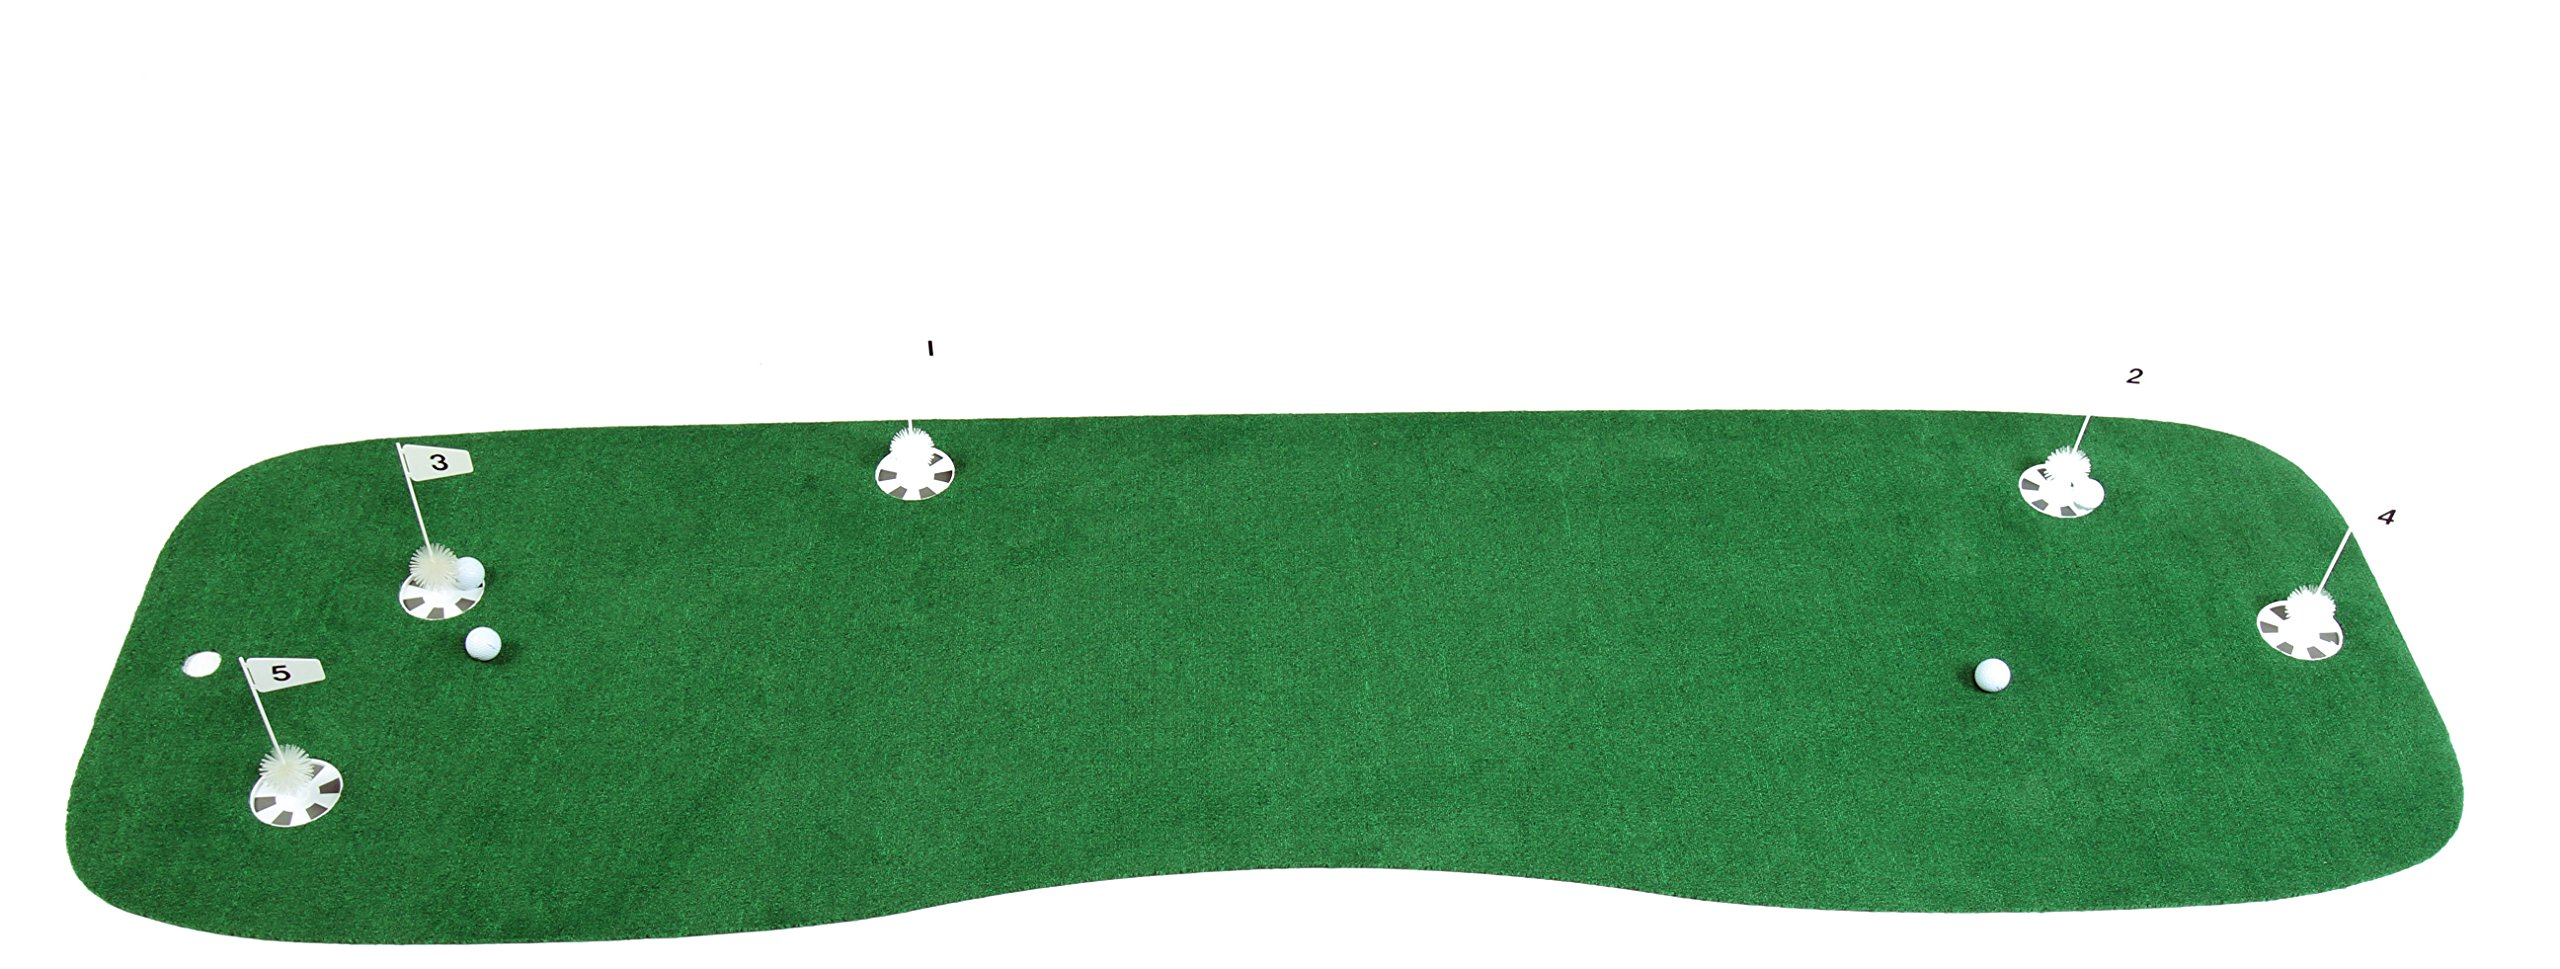 StarPro 10'x3' 5-Holes Pro-Am Professional Practice Putting Green. Realistic Practice of Your Set-Up and Putts All Over the Green. Not One Boring Direction. Indoor/Patio/Poolside. Lower Your Score! by StarPro Greens